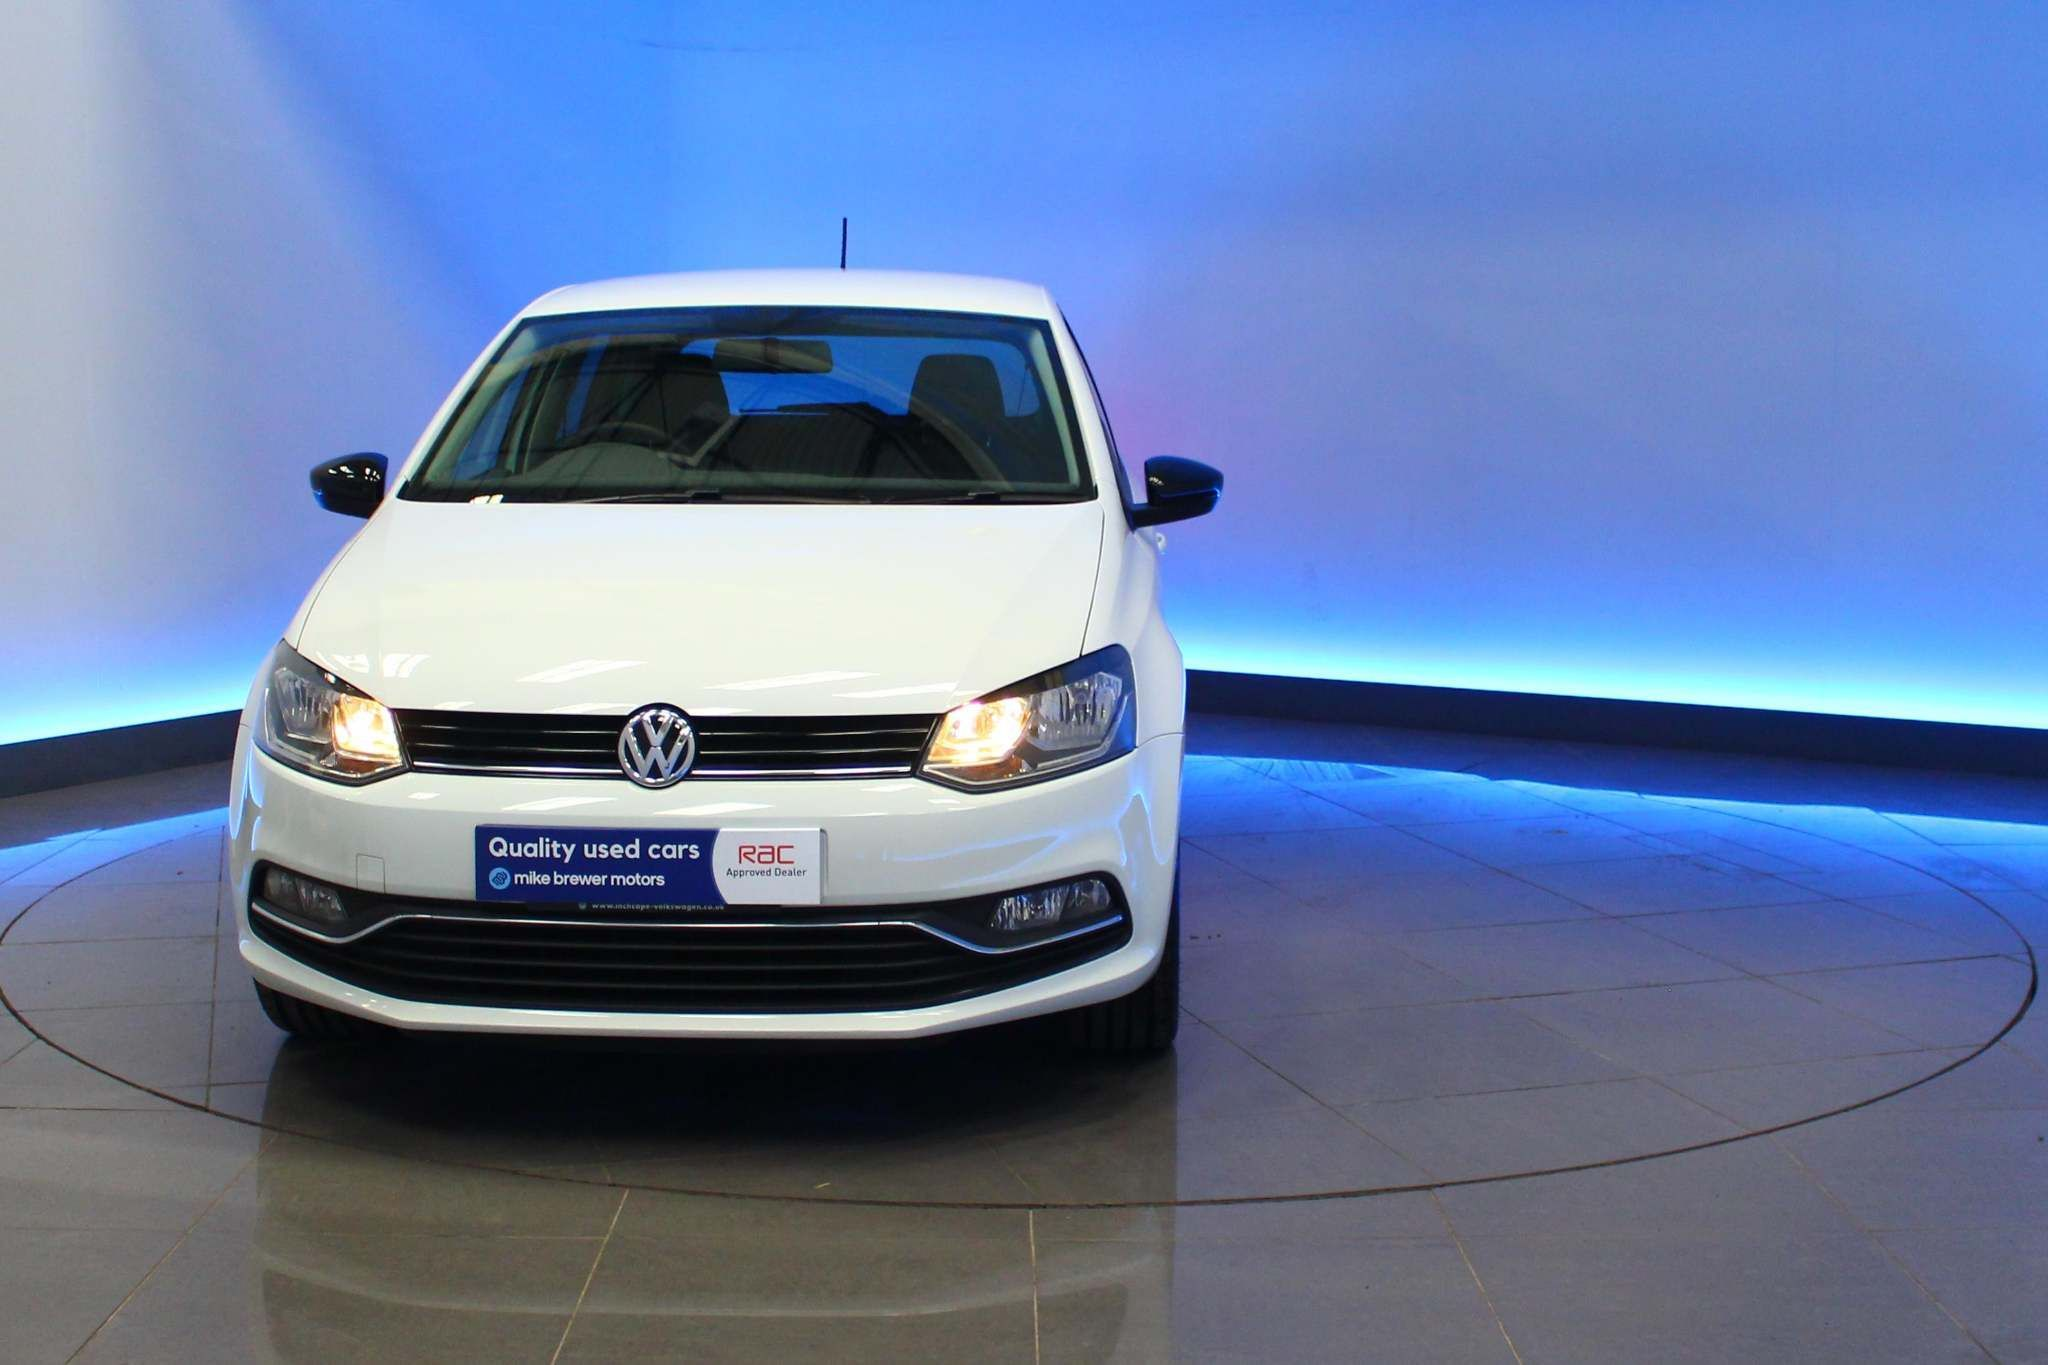 Used Volkswagen Polo 1.2 Tsi Bluemotion Tech Se Design (s/s) 5dr